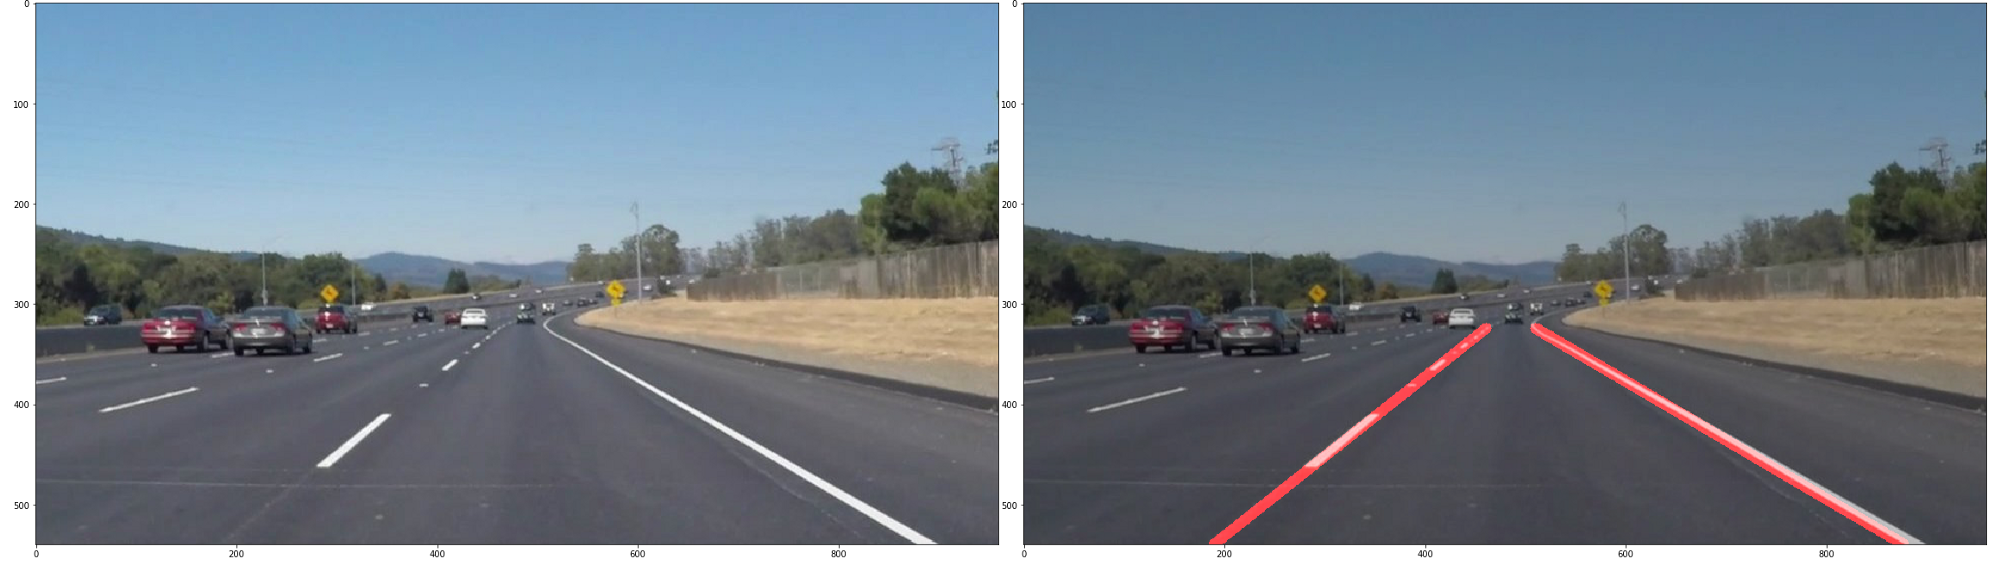 Drawing road horizontal. Simple lane detection with